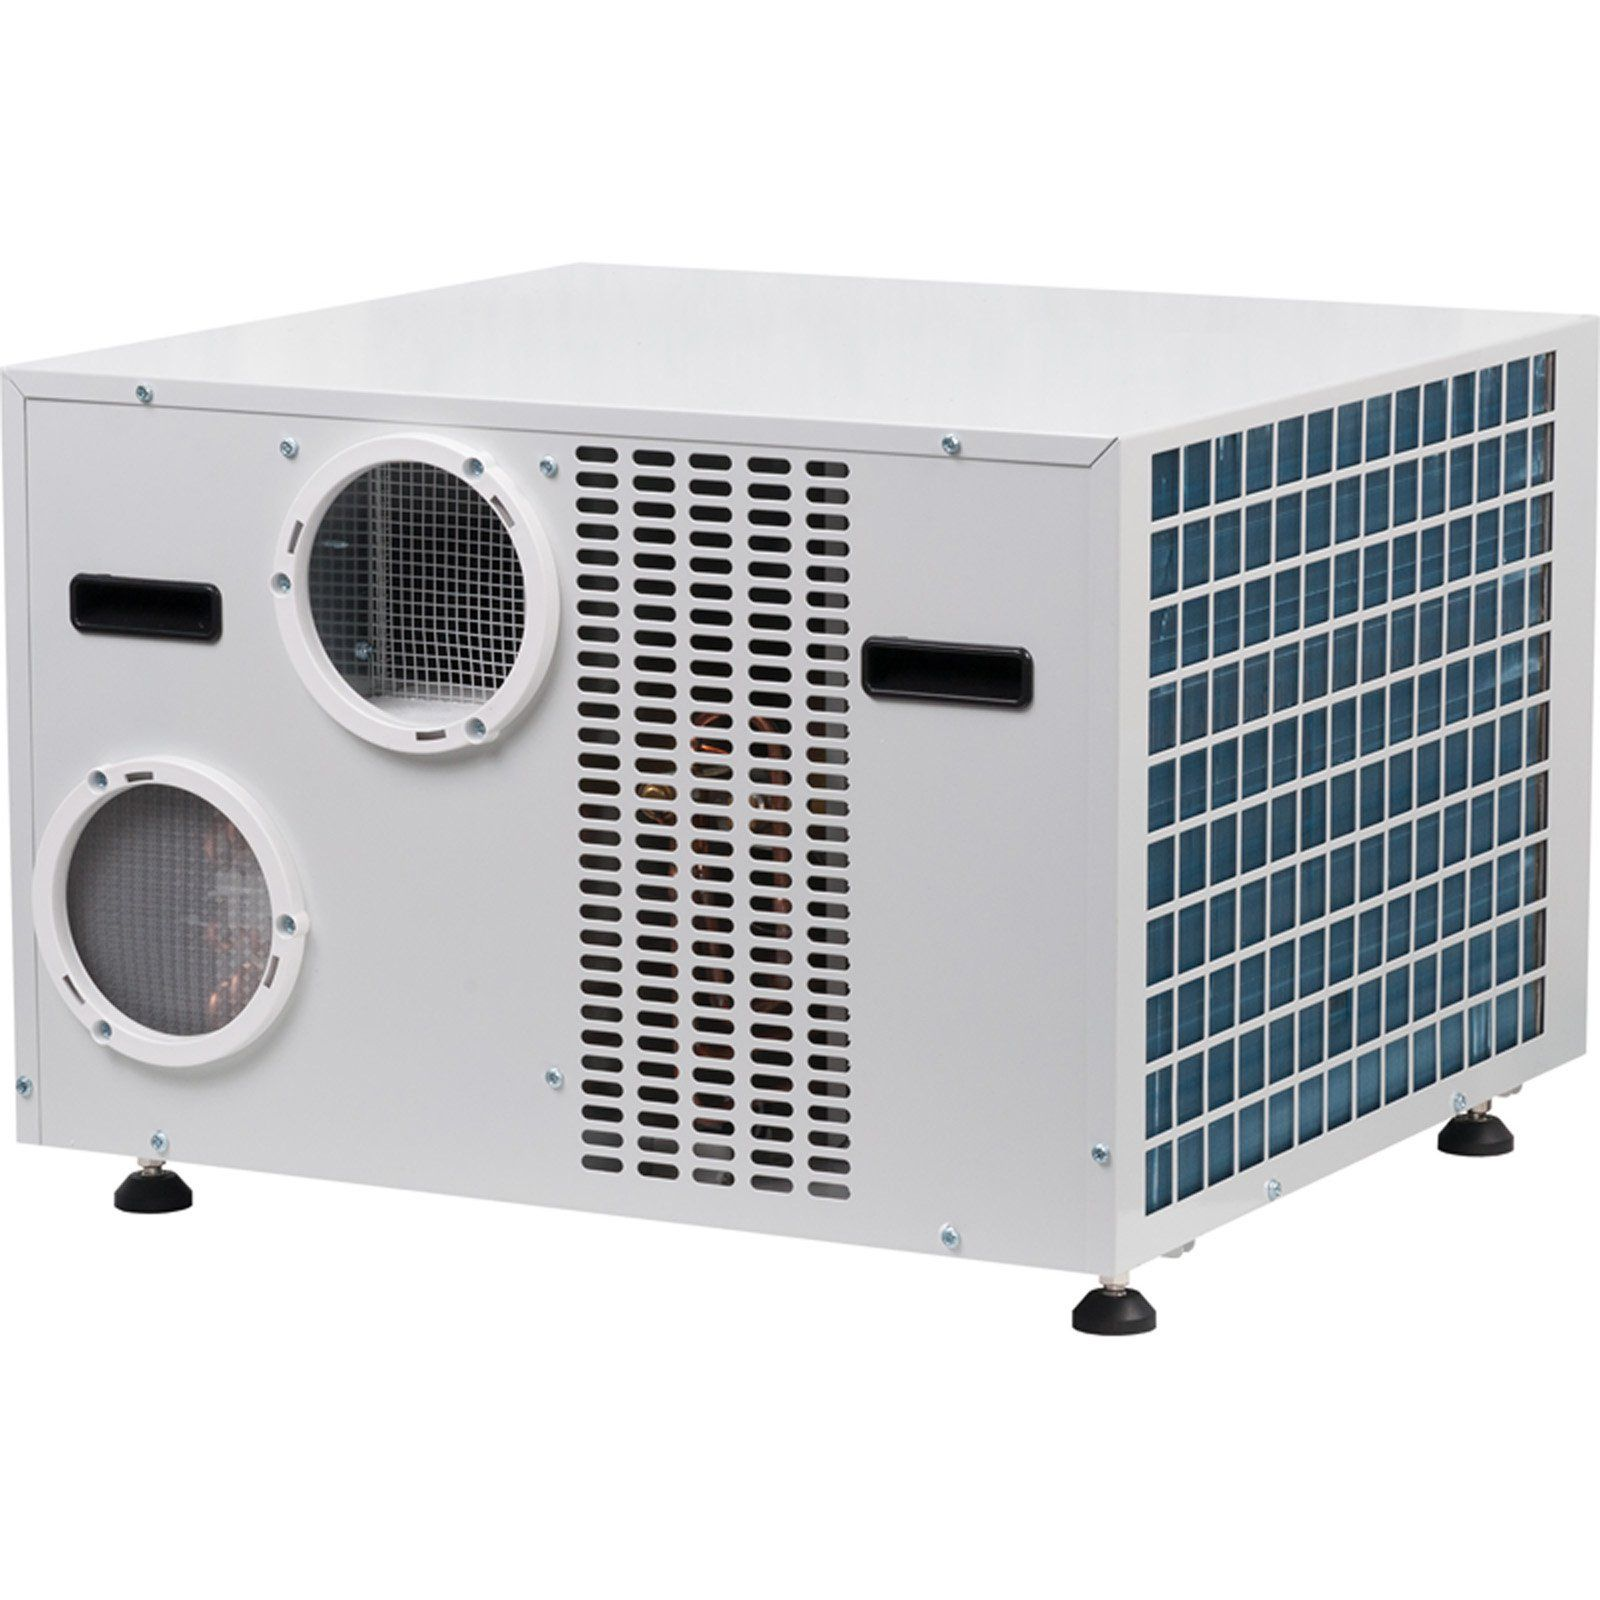 ClimateRight Portable Air Conditioner and Dehumidifier